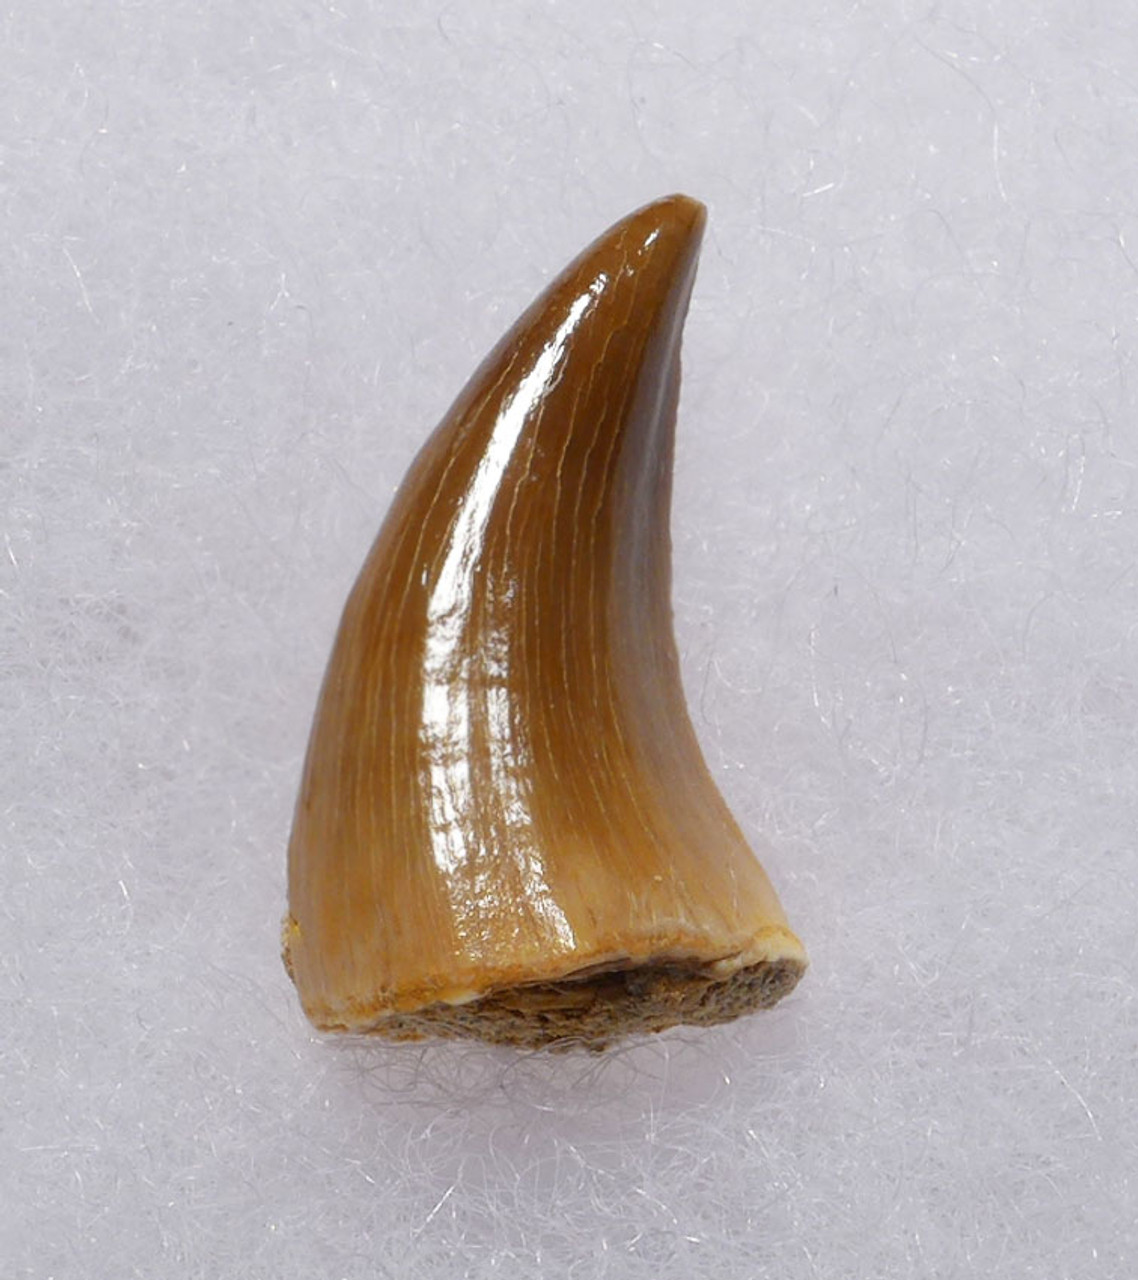 MOSASAUR FOSSIL TOOTH FROM A HALISAURUS MARINE REPTILE *DT1-139